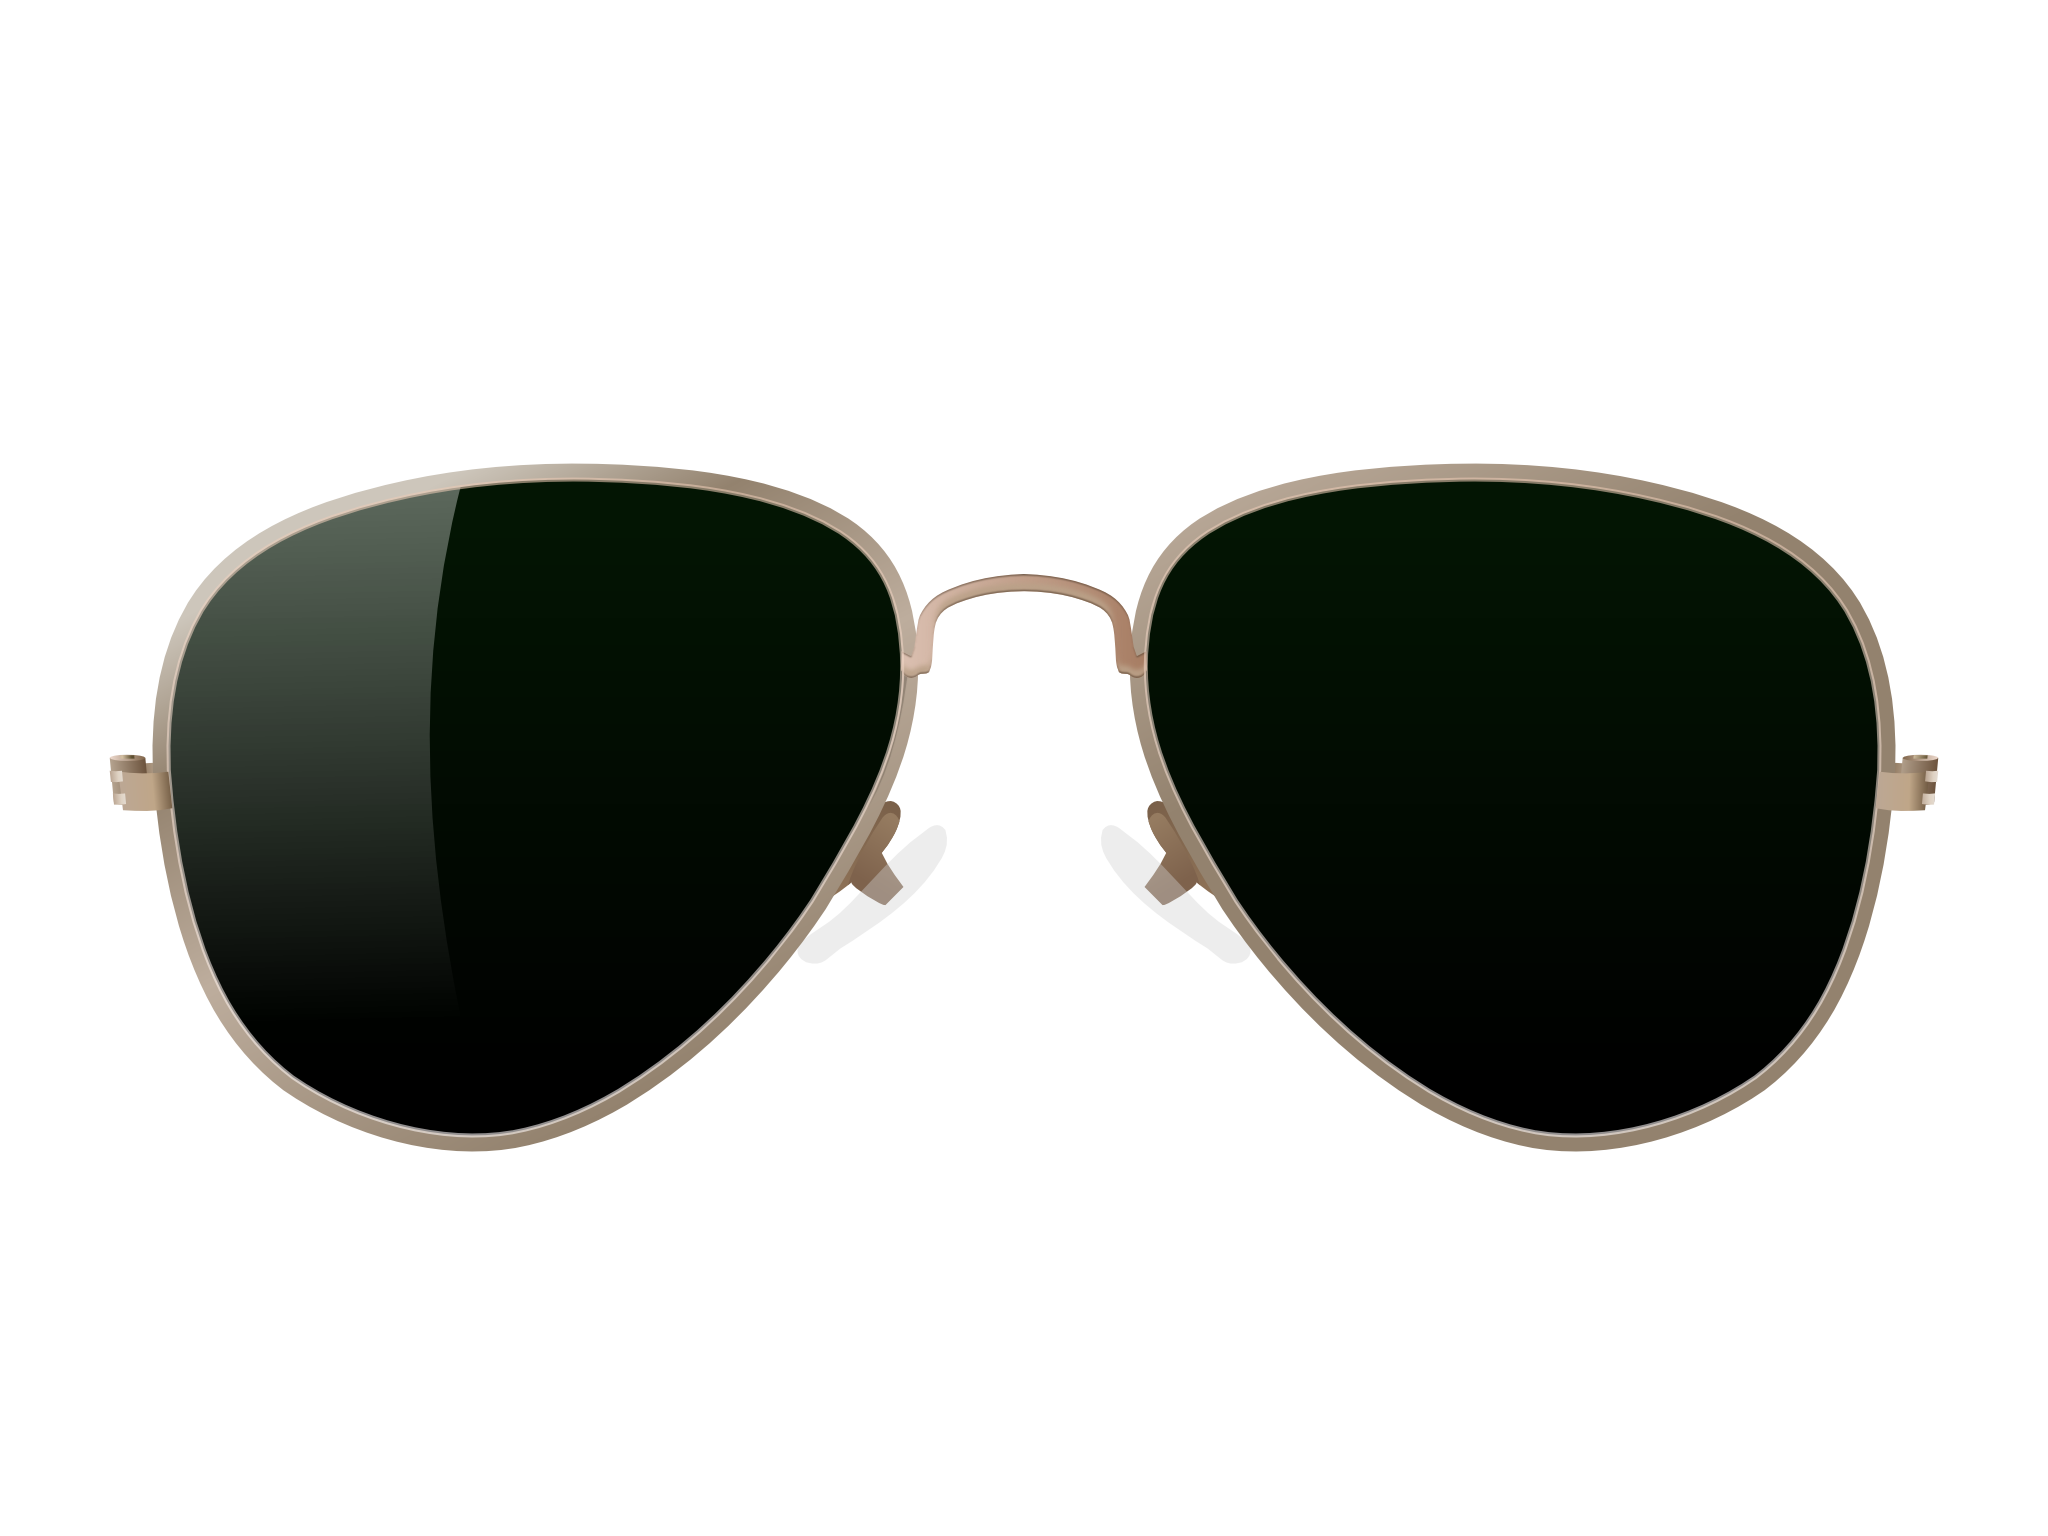 sunglasses_by_thegoldenbox-d77z0oa.png (2048×1536) | inspiration 2 ...